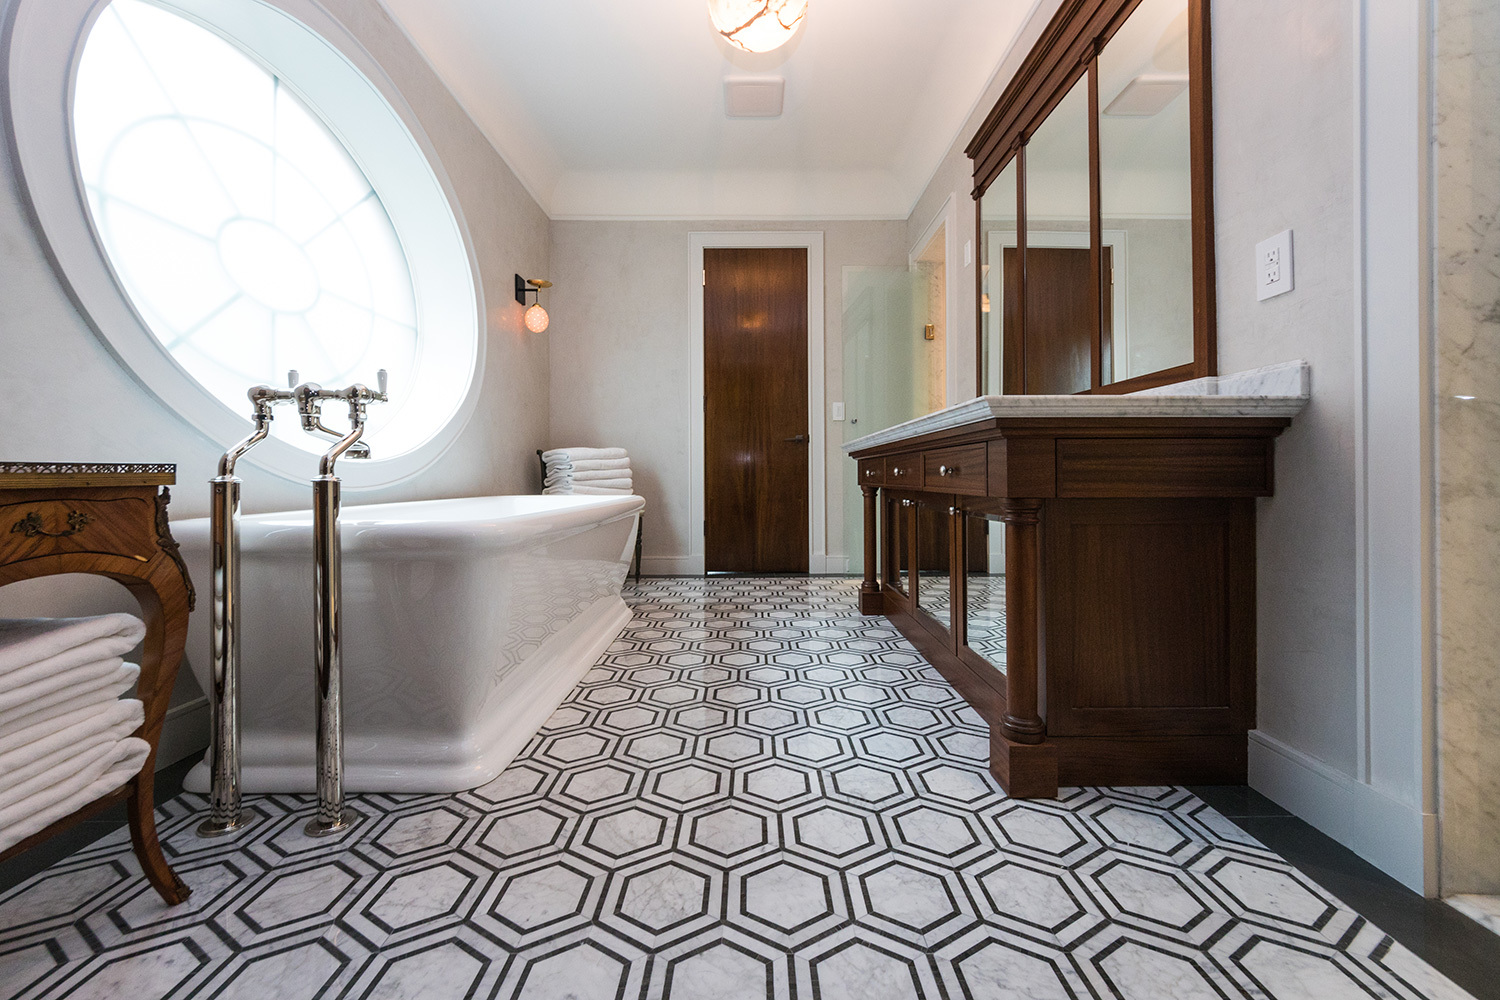 spa style bathroom with destination tub and hexagon patterned tile